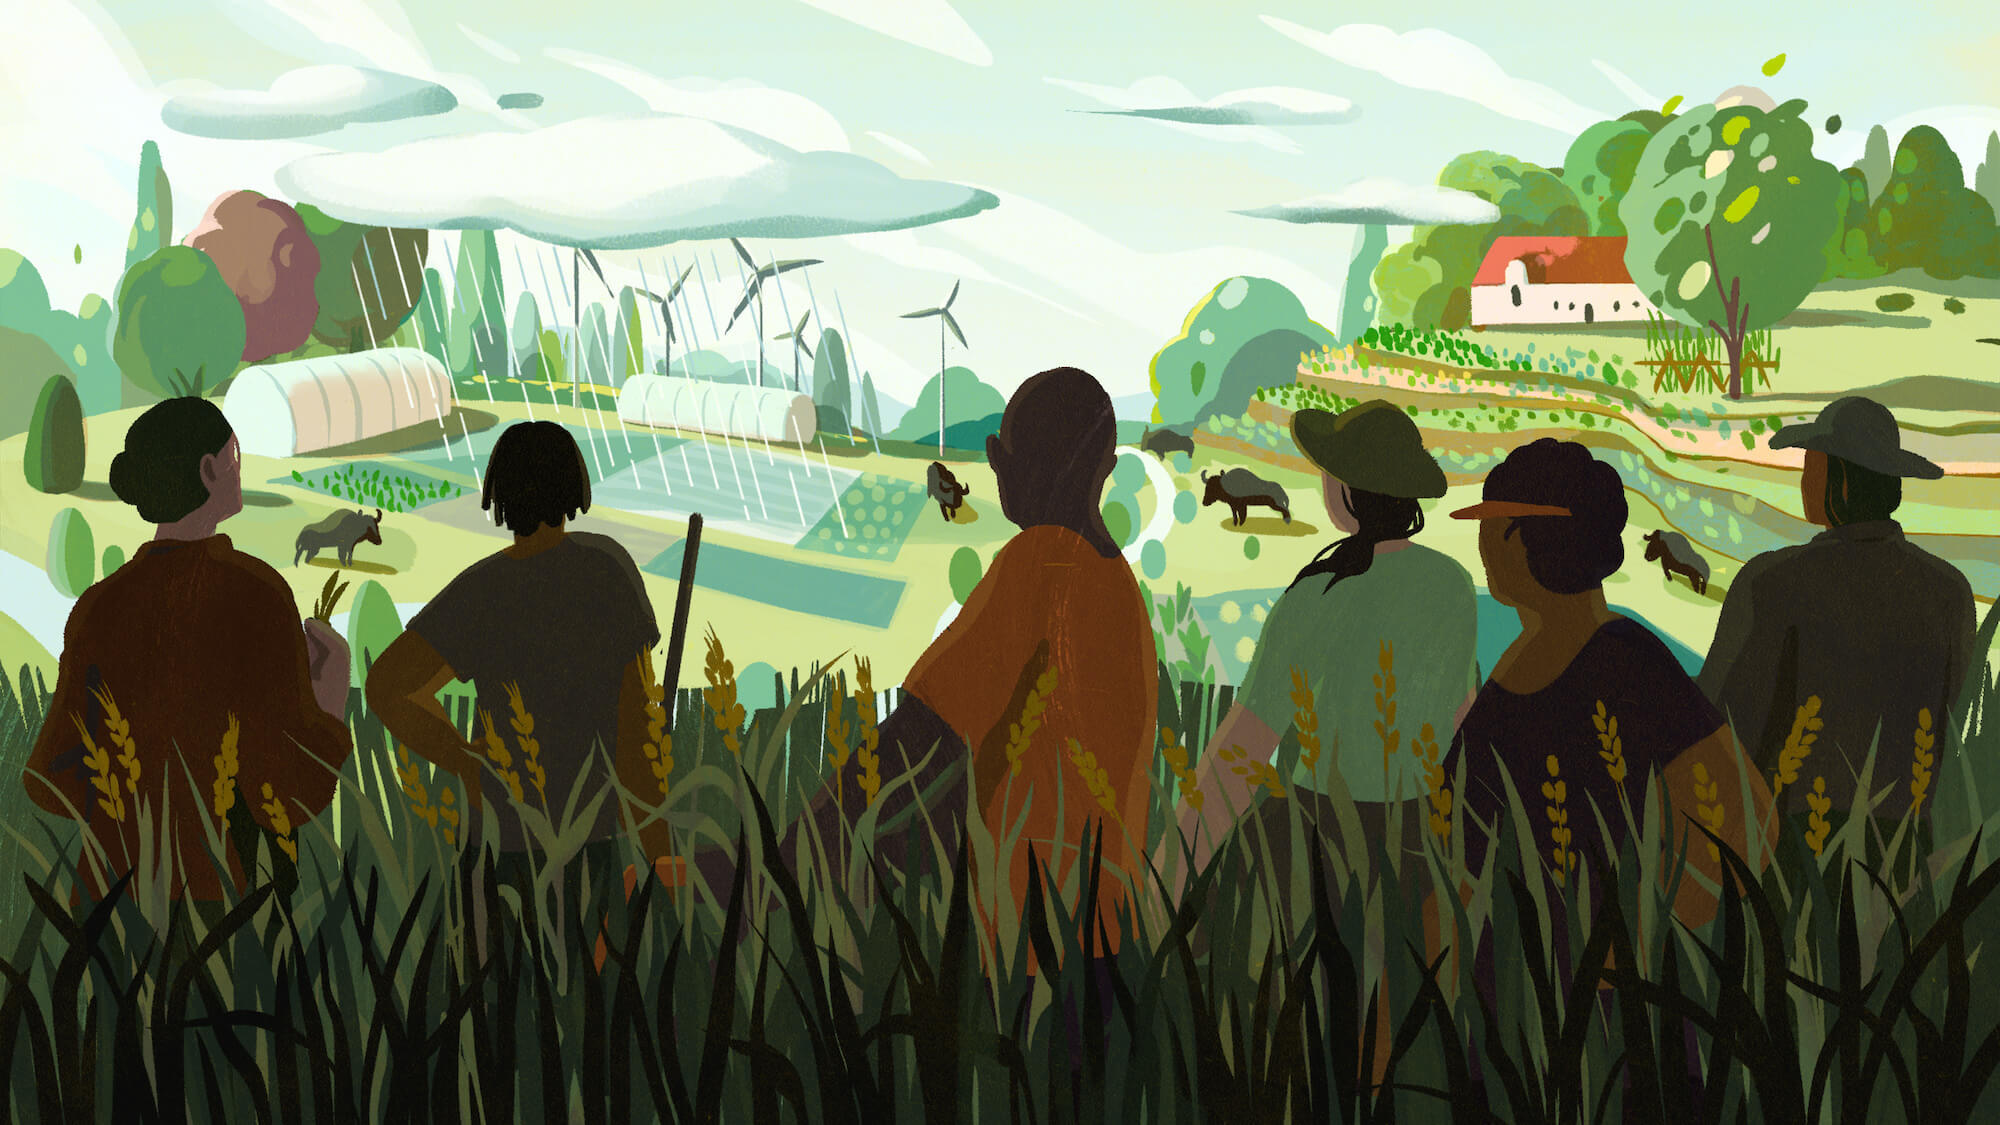 Illustration: Regenerative agriculture needs to reckon with racial justice, land access, equity and other issues before it can fight climate change